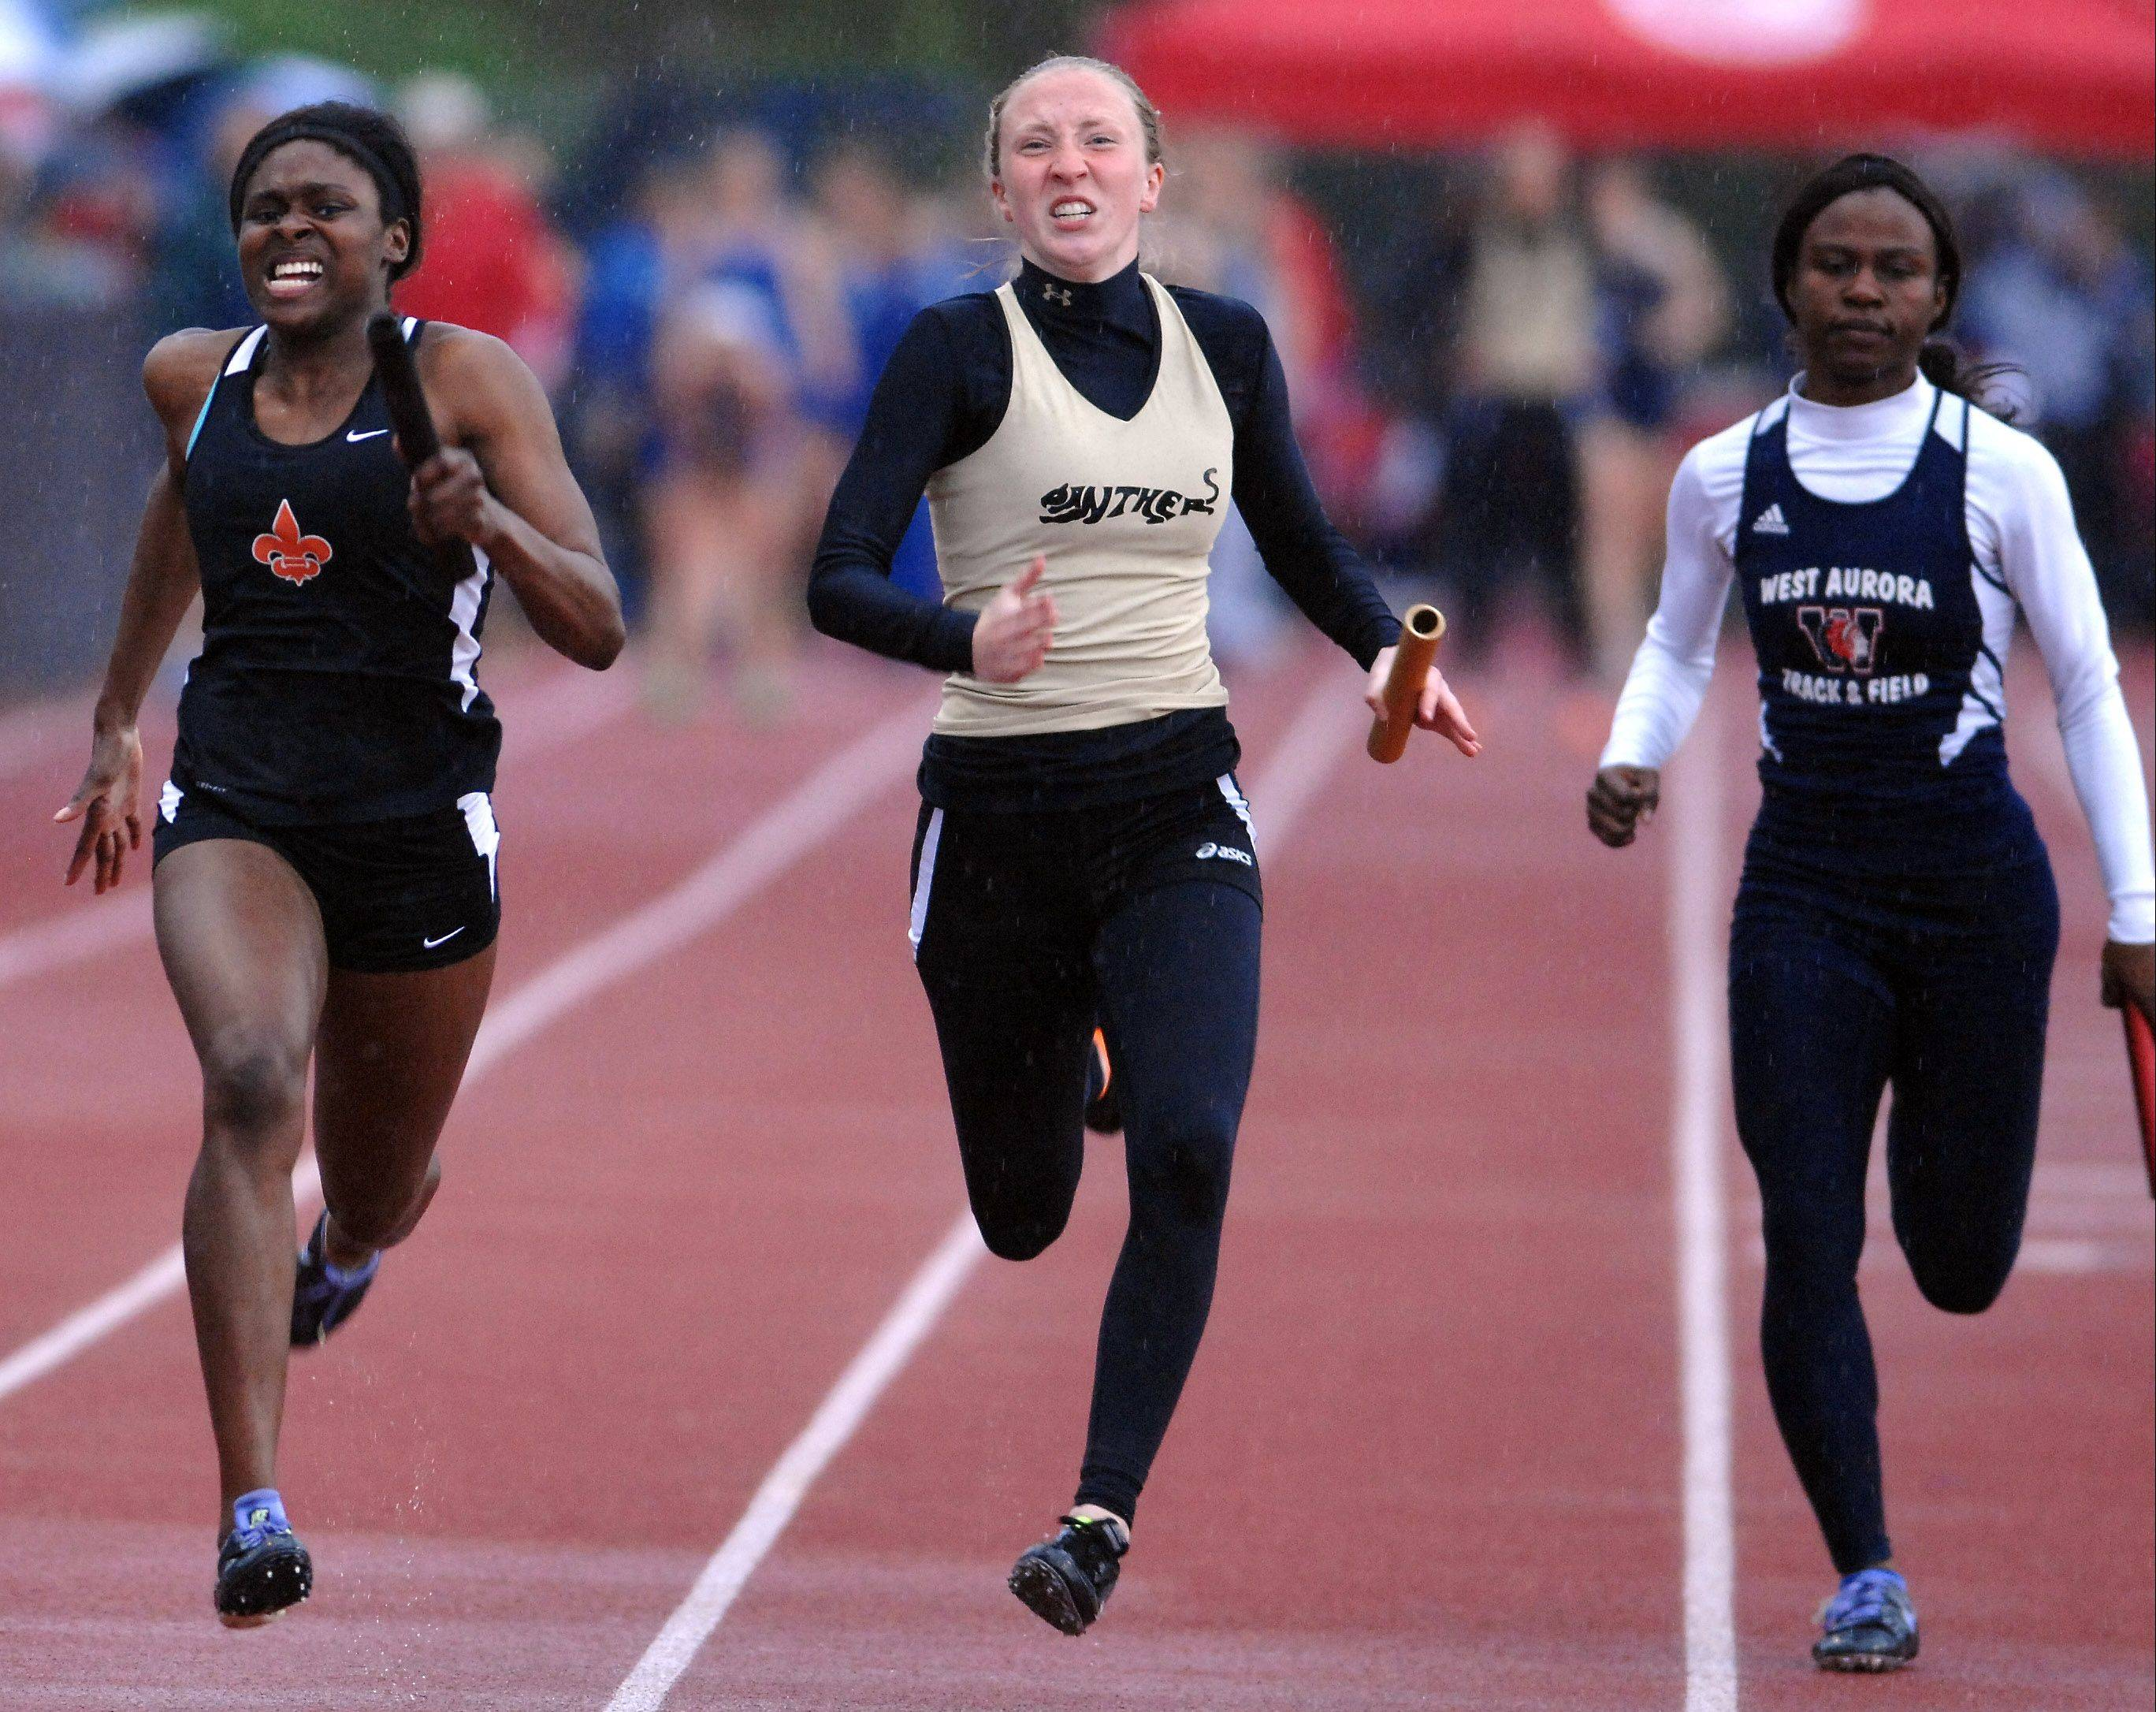 Brittney Williams of St. Charles East, left, Glenbard North's Sara Stankoskey and Snita Saffa of West Aurora anchor their teams to first-, second- and third-place finishes, respectively, in the 400-meter relay during the Class 3A West Aurora girls track and field sectional Thursday.